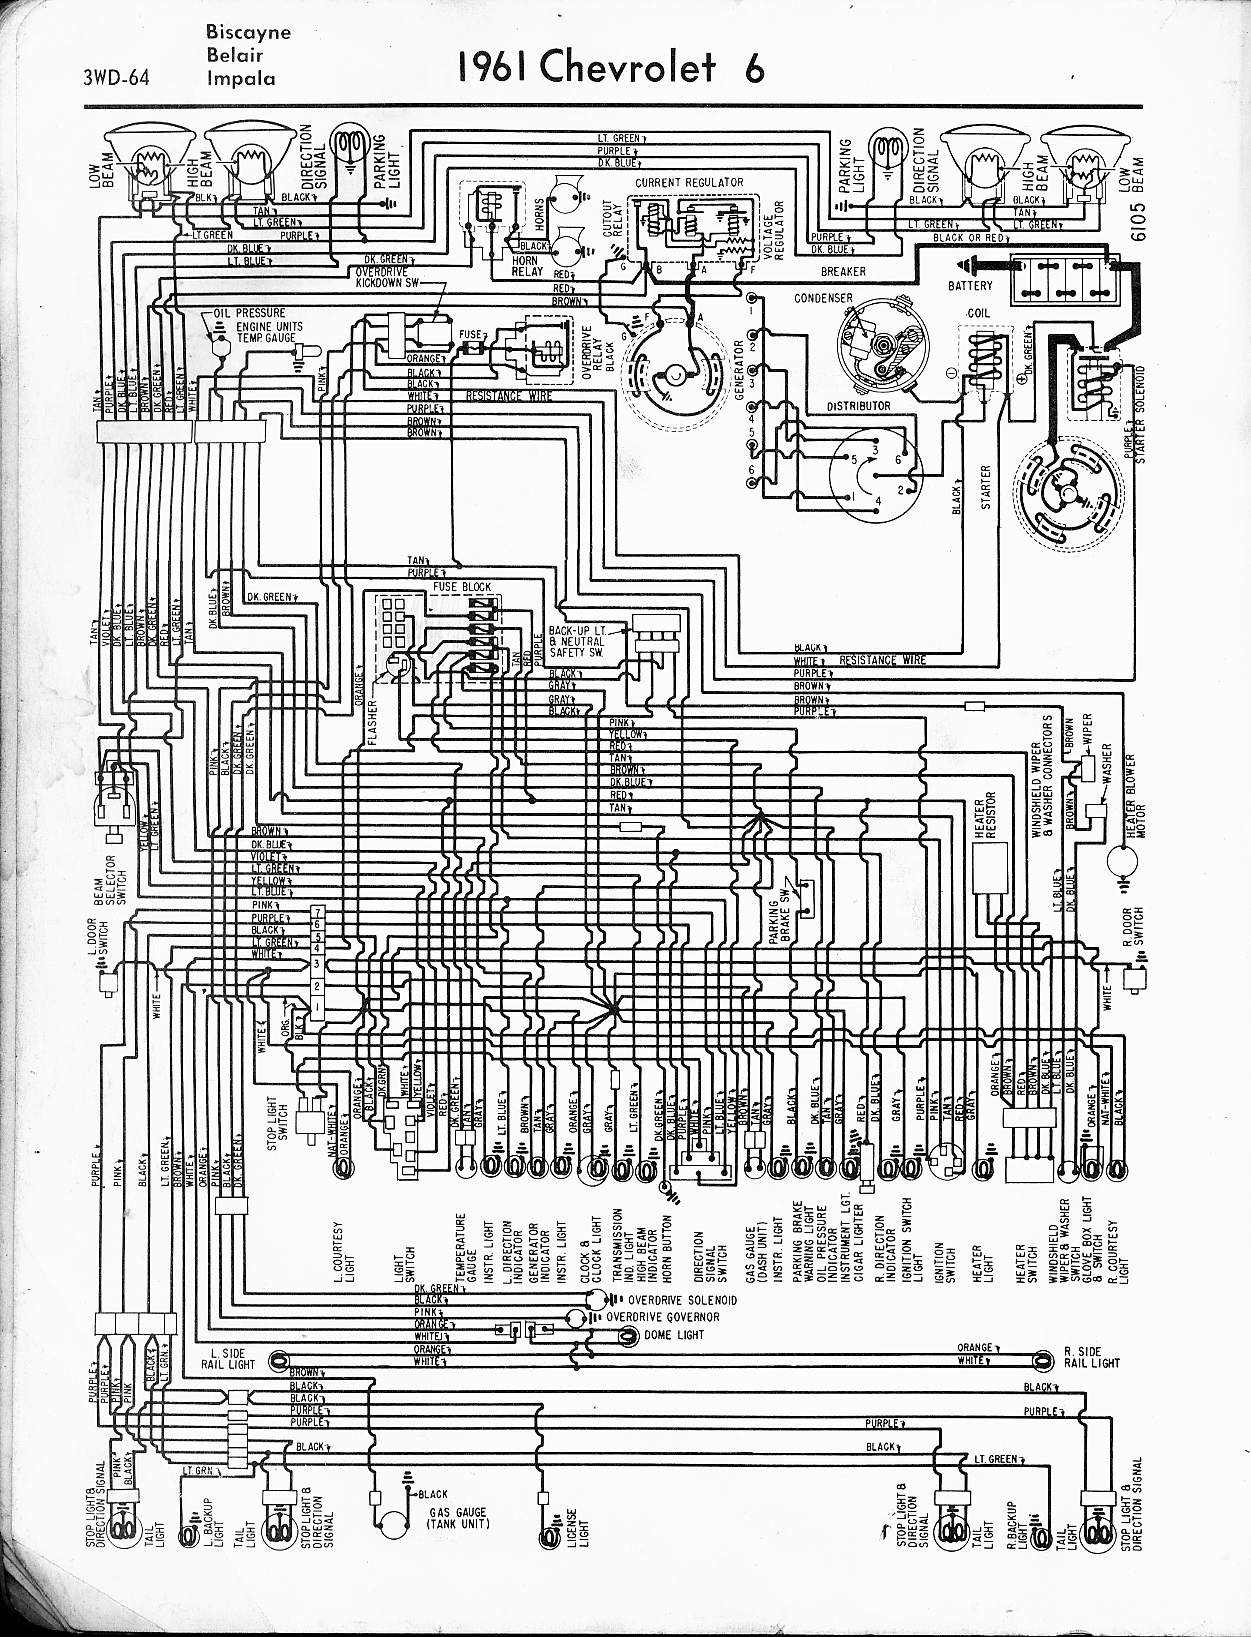 Wiring Diagram For 1970 Chevy Impala | Best Wiring Liry on 1970 impala fuel gauge, 1970 impala frame, 1970 mustang fuse box diagram, 1970 impala exhaust diagram, 1967 impala wiper motor diagram, 1970 impala suspension diagram, 1970 chevelle heating diagram, 1970 chevelle fuse block diagram, 1970 impala wiper motor, 1970 impala tachometer, 1970 impala engine, 1970 impala brochure,